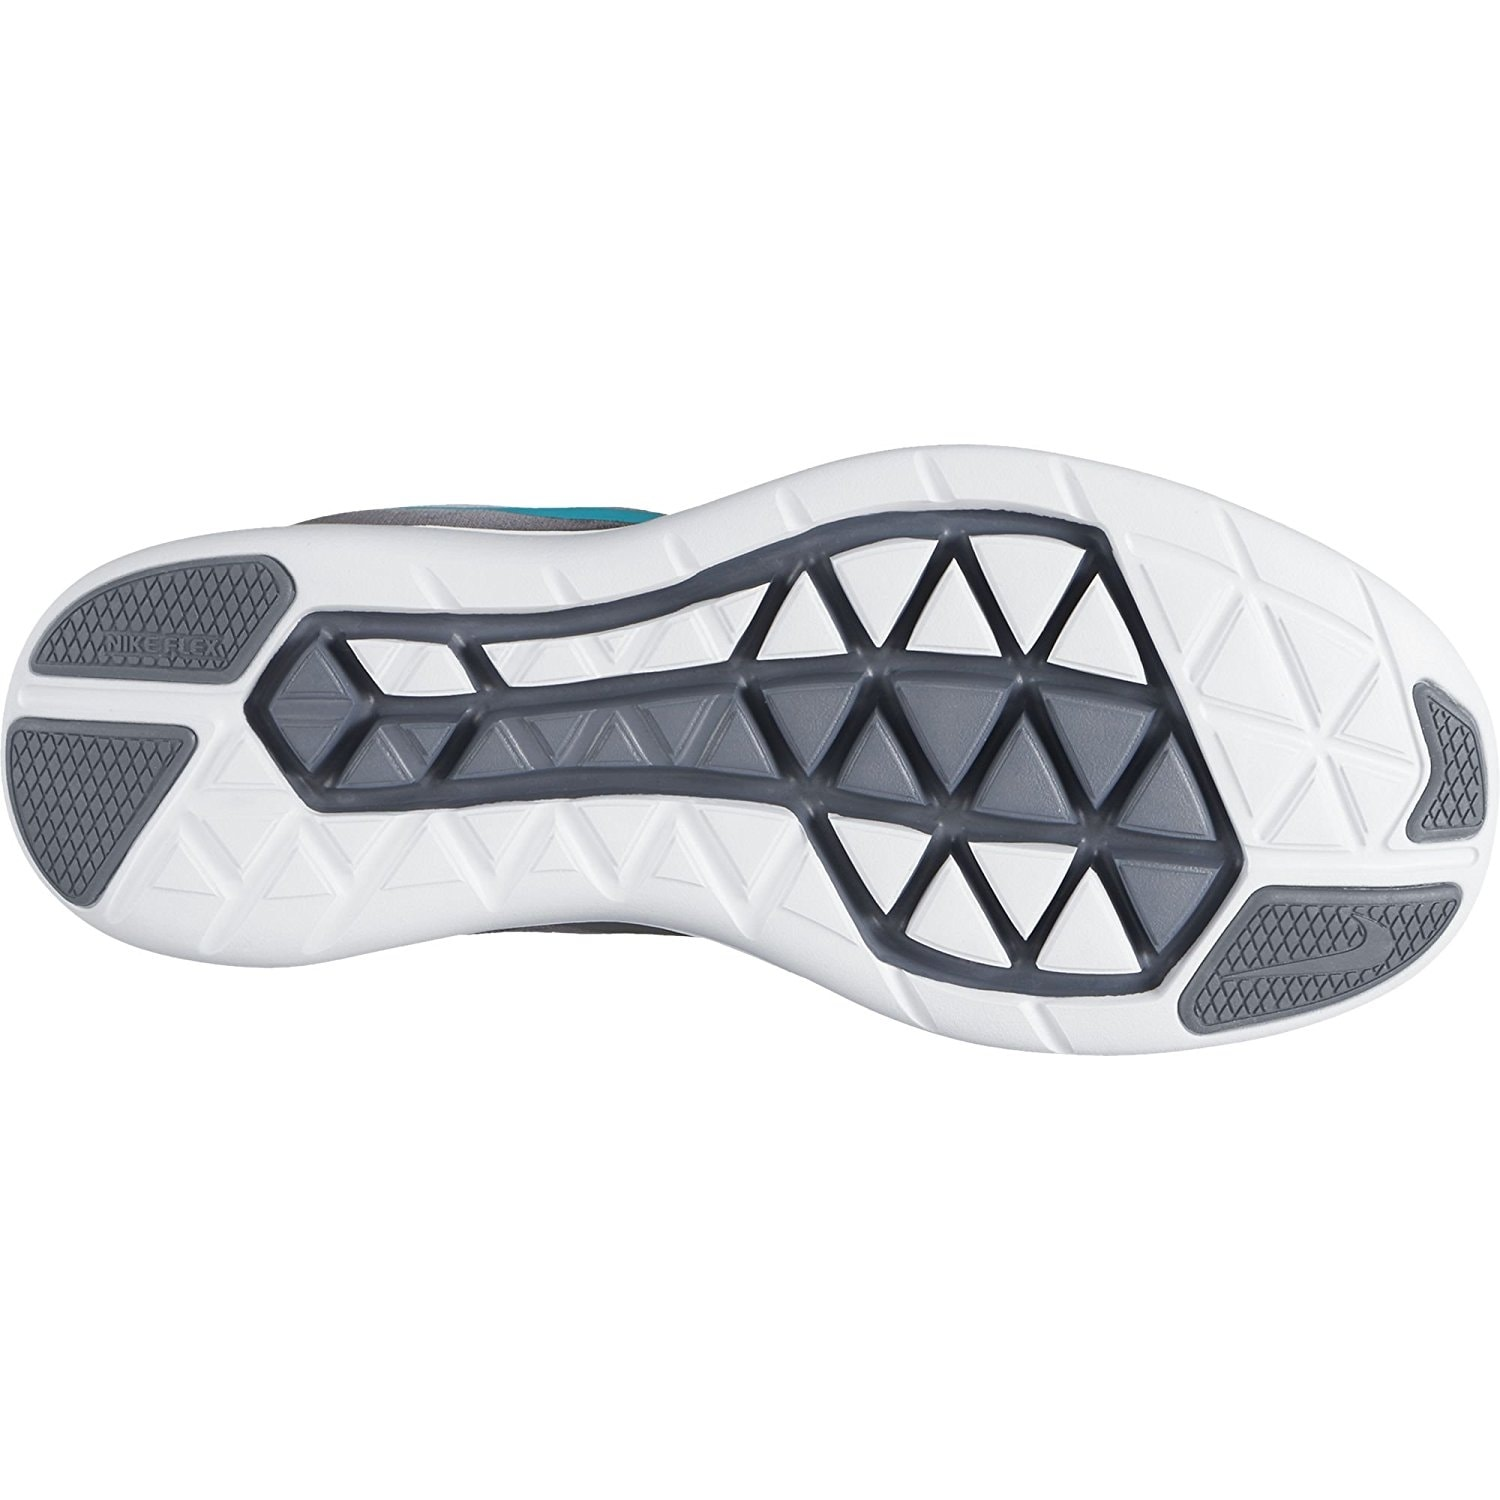 f61f78a08da9f Shop Nike Women s Flex 2017 Running Shoes Pure Platinum  Clear Jade-Grey  Black - Free Shipping Today - Overstock - 17949926